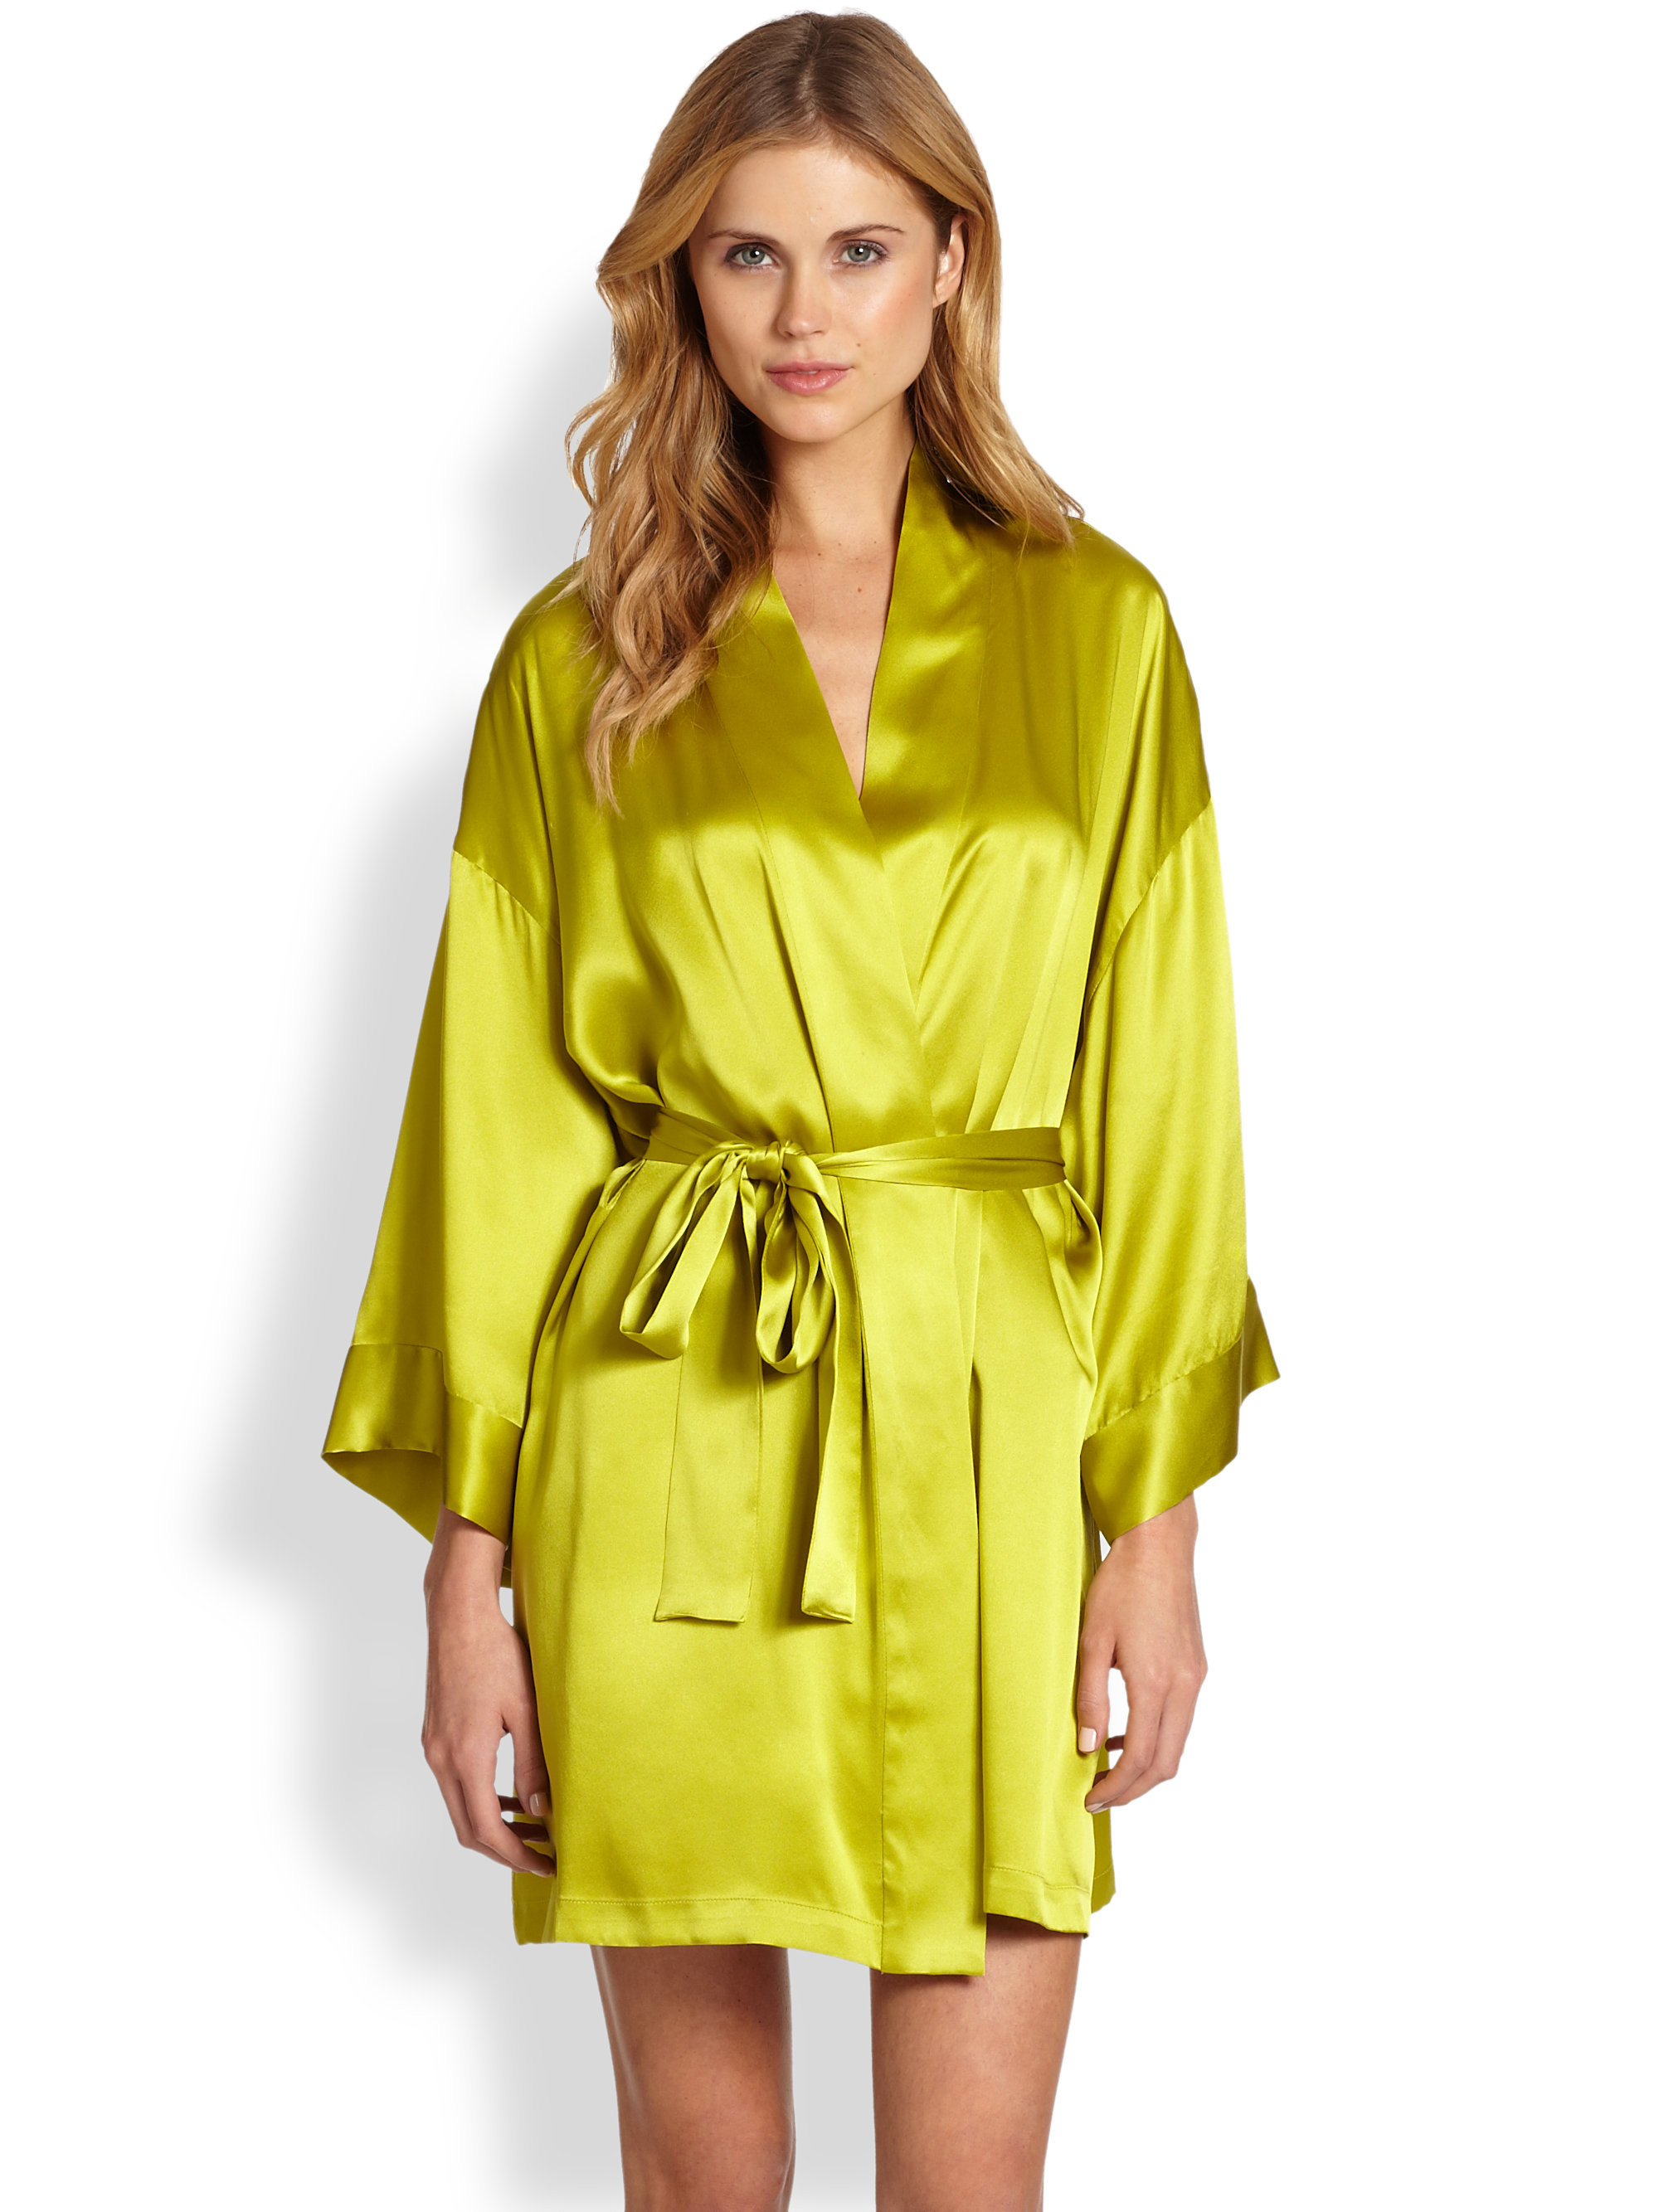 Josie Natori Lolita Silk Short Robe in Green (MELON) | Lyst